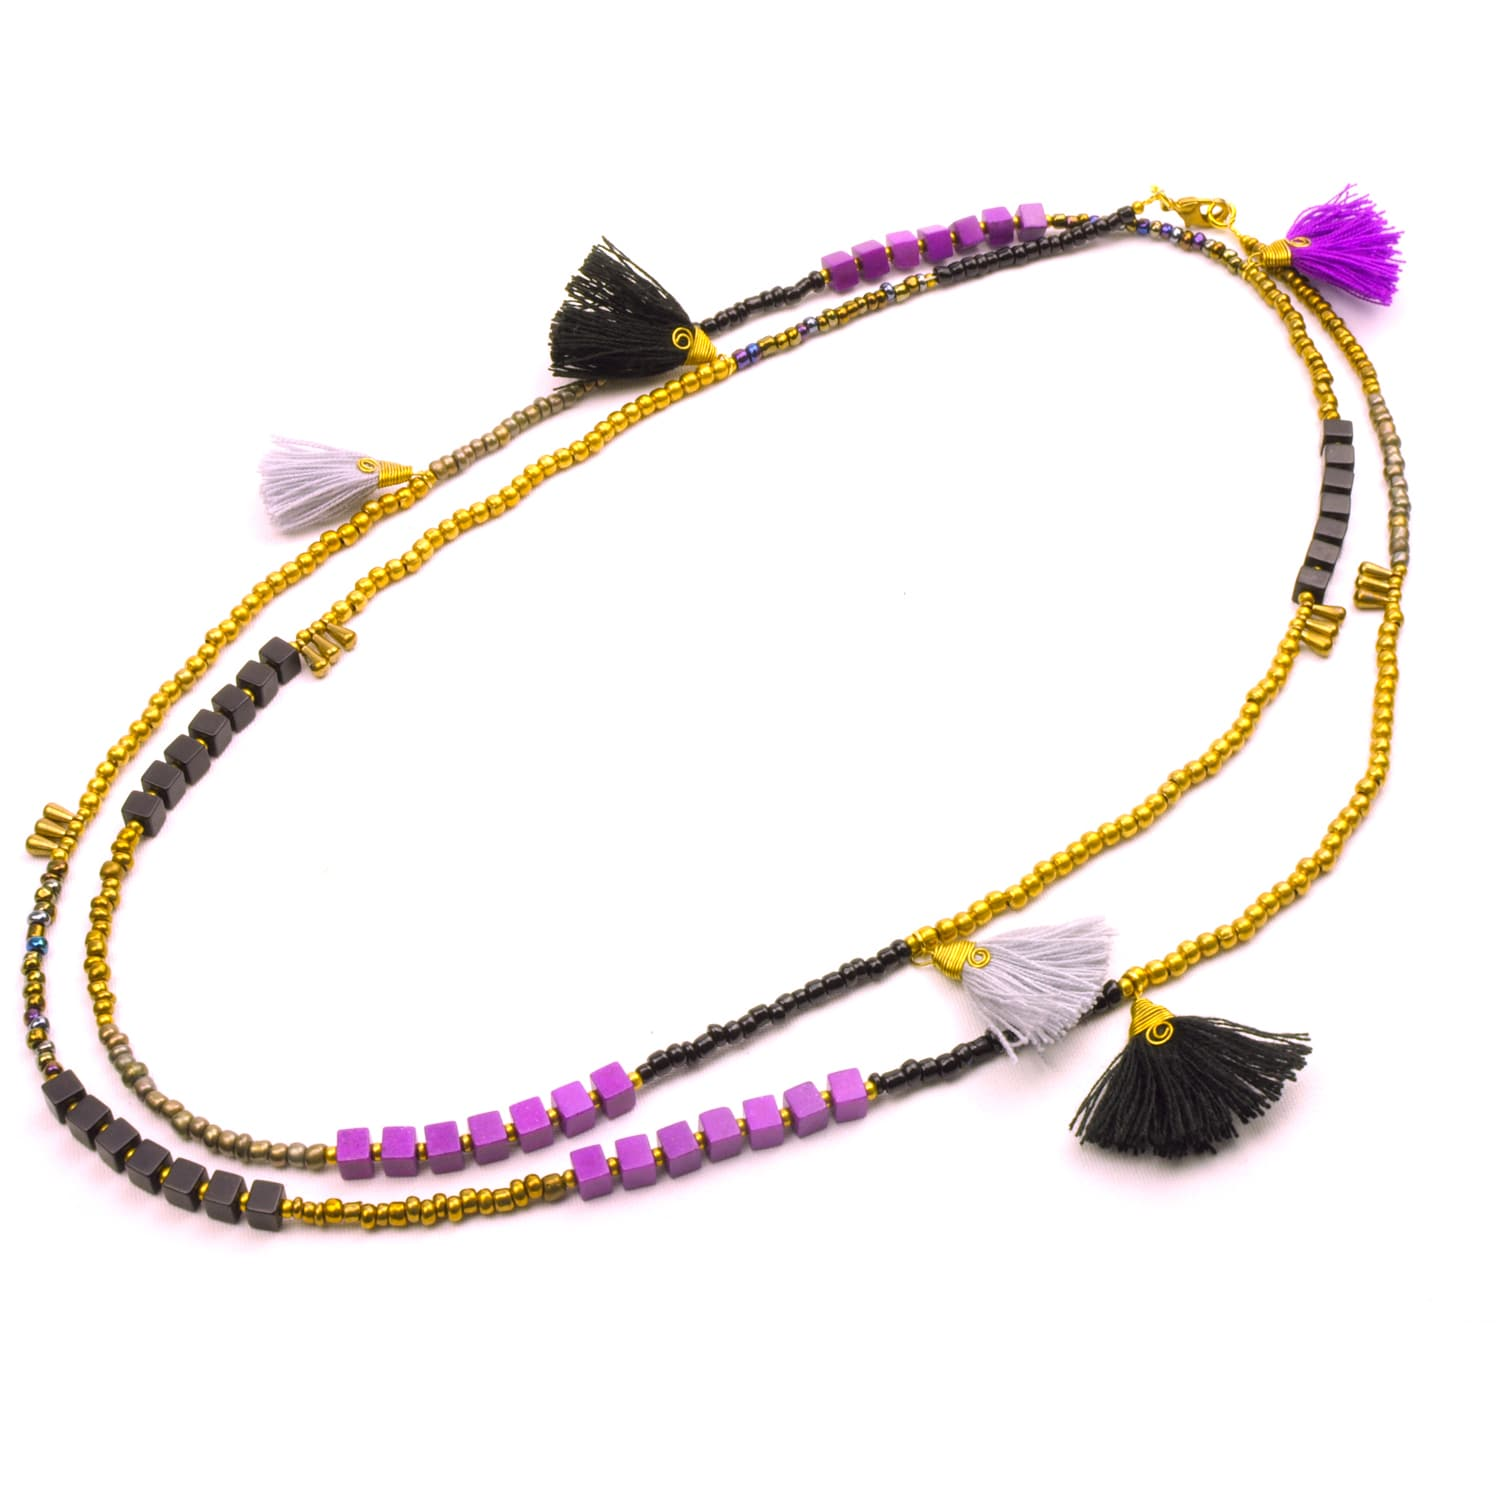 Global Crafts Handmade Midnight Kerala 3-in-1 Necklace - ...